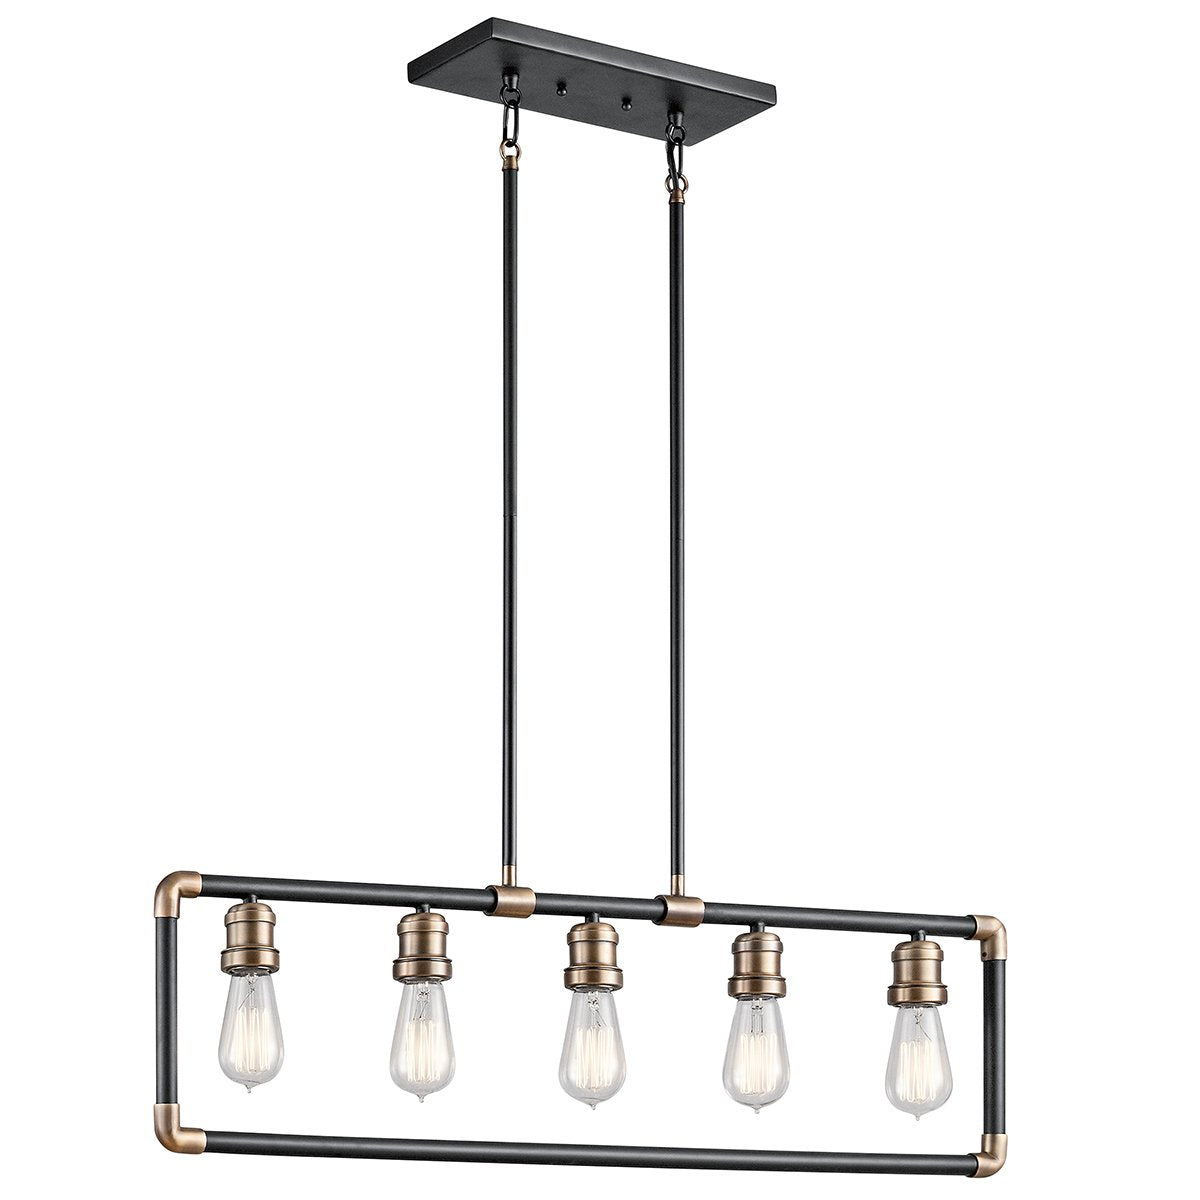 Five Light Black and Brass Linear Chandelier